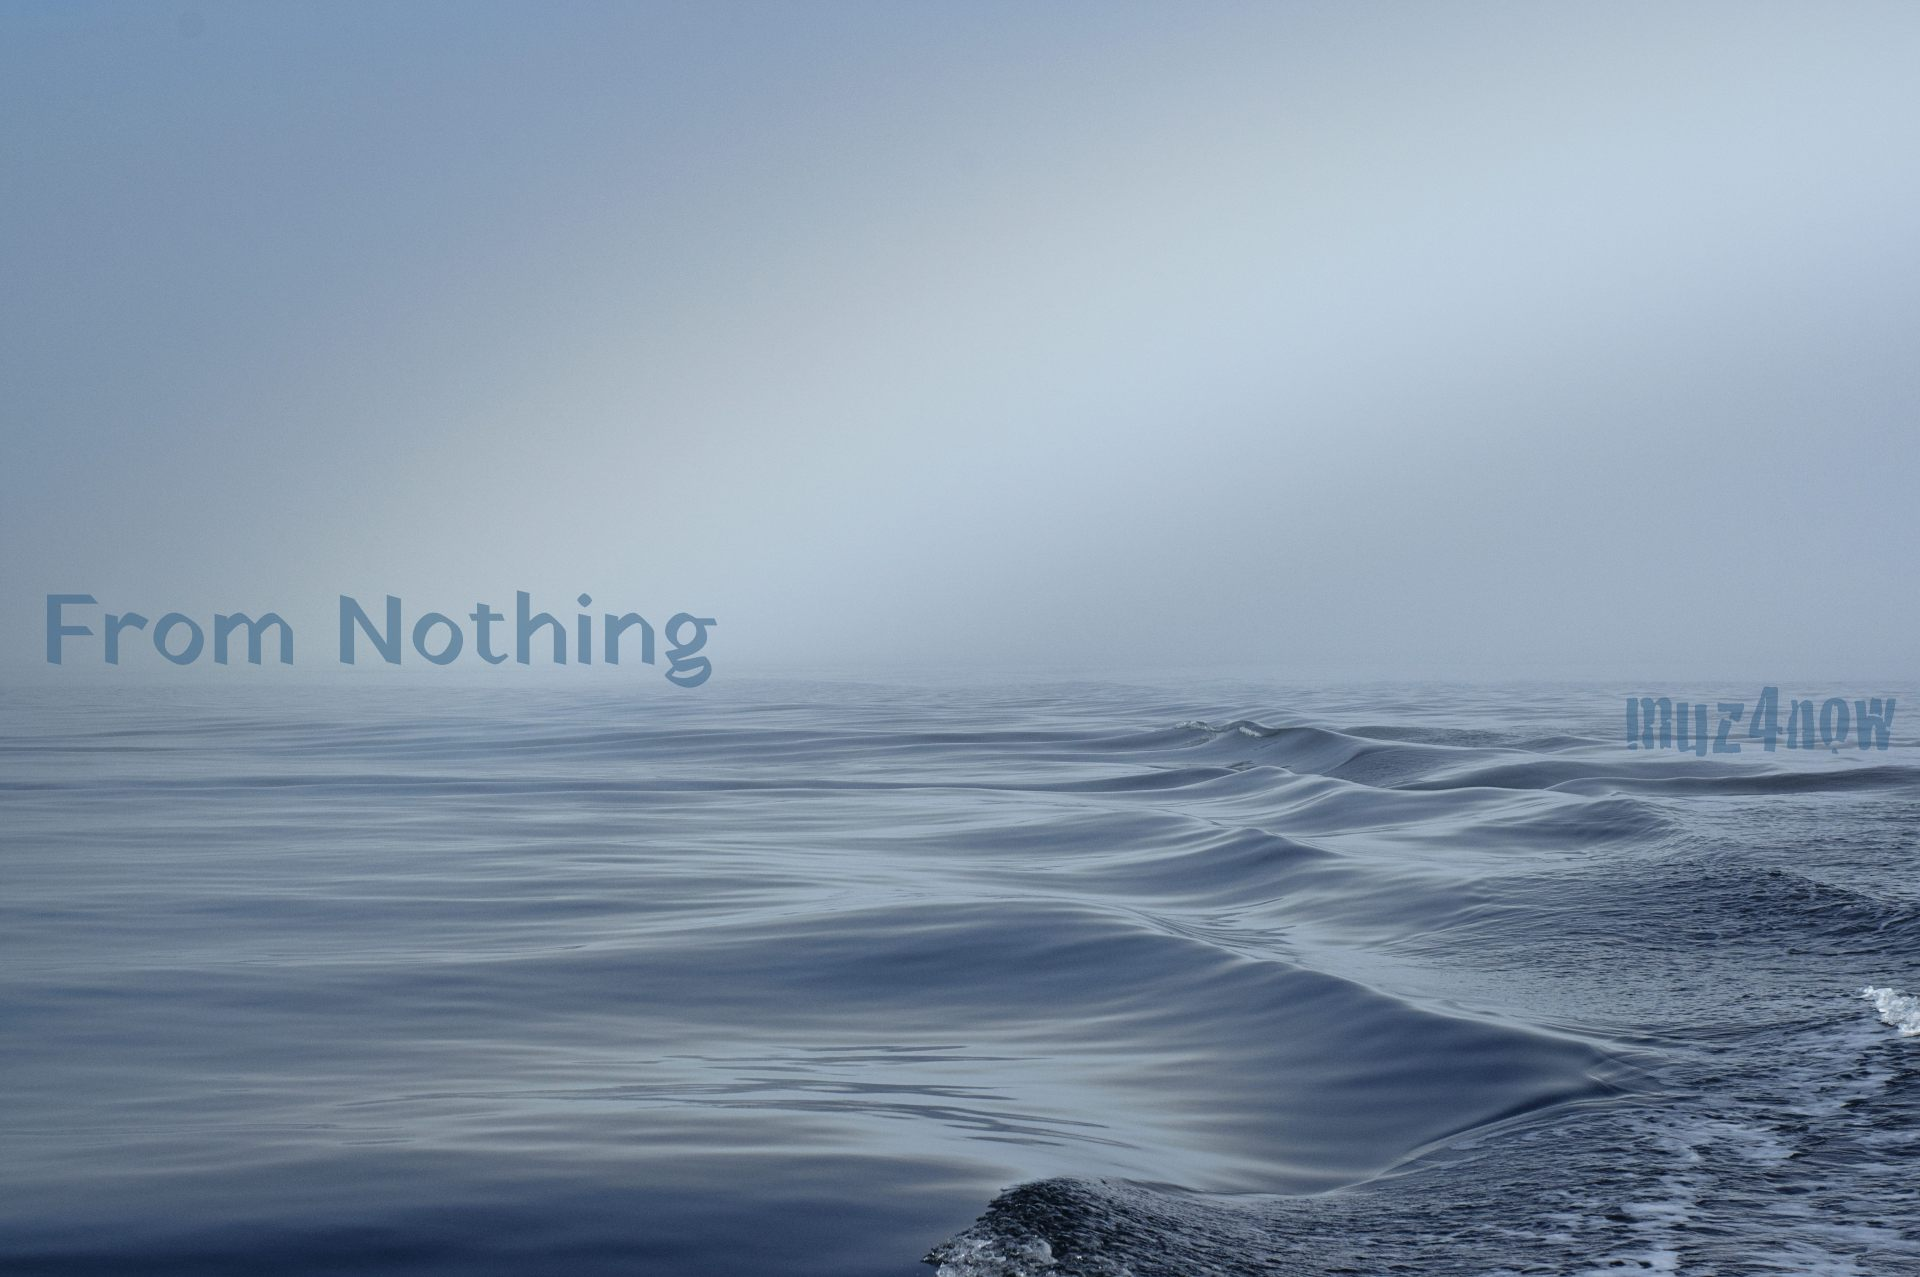 From Nothingness – How Emptiness Inspires Us